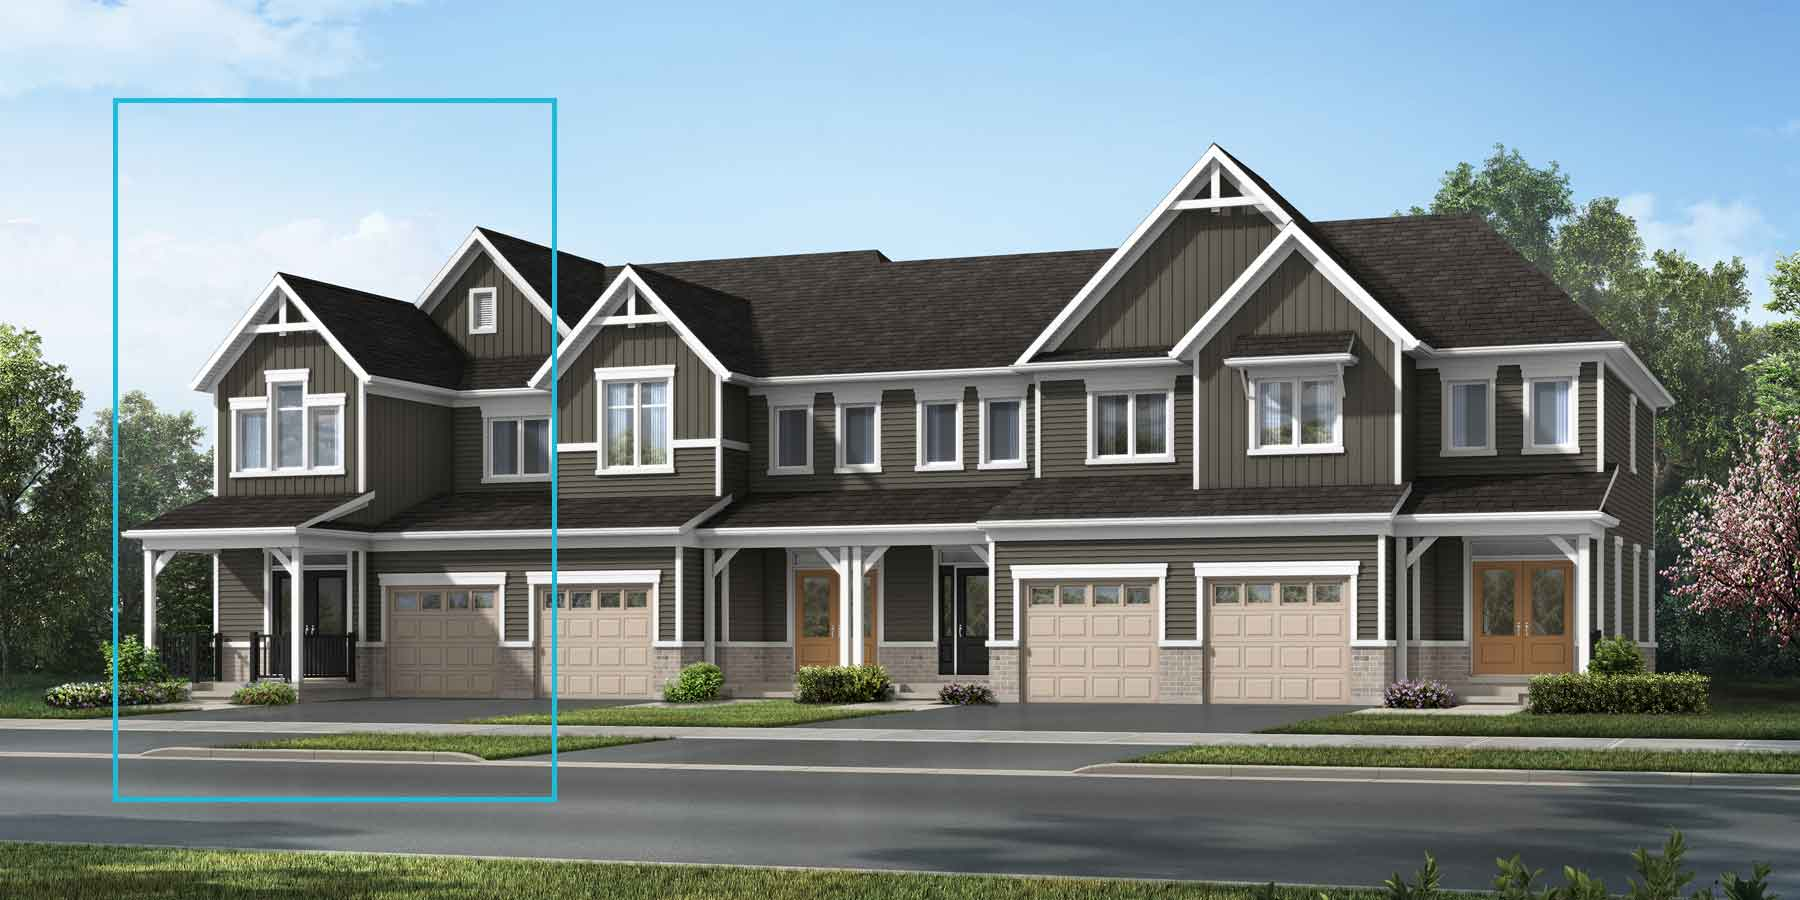 The Trussler End Plan elevationfarmhouse_southestates_trusslerend_main at Wildflower Crossing in Kitchener Ontario by Mattamy Homes